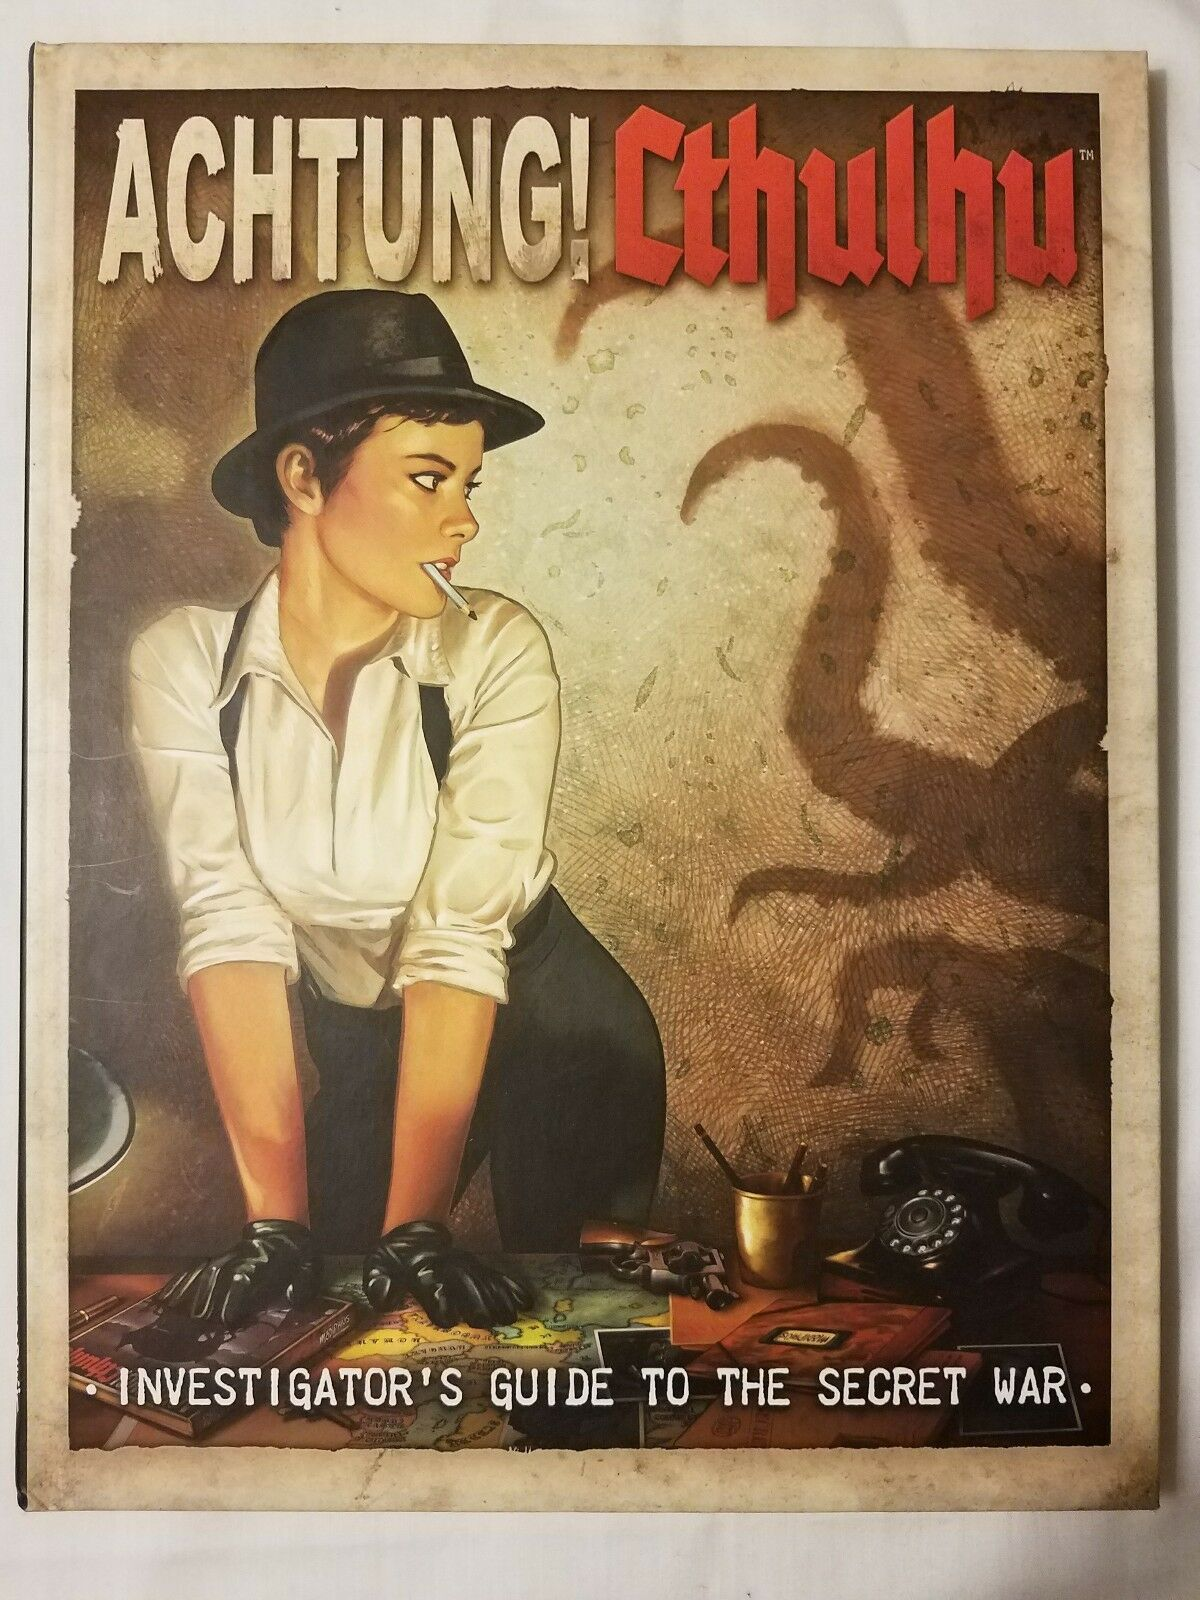 BRANDNEW ACHTUNG  CTHULHU INVESTIGATOR'S GUIDE GUIDE GUIDE to the SECRET WAR Call of RPG bca33e